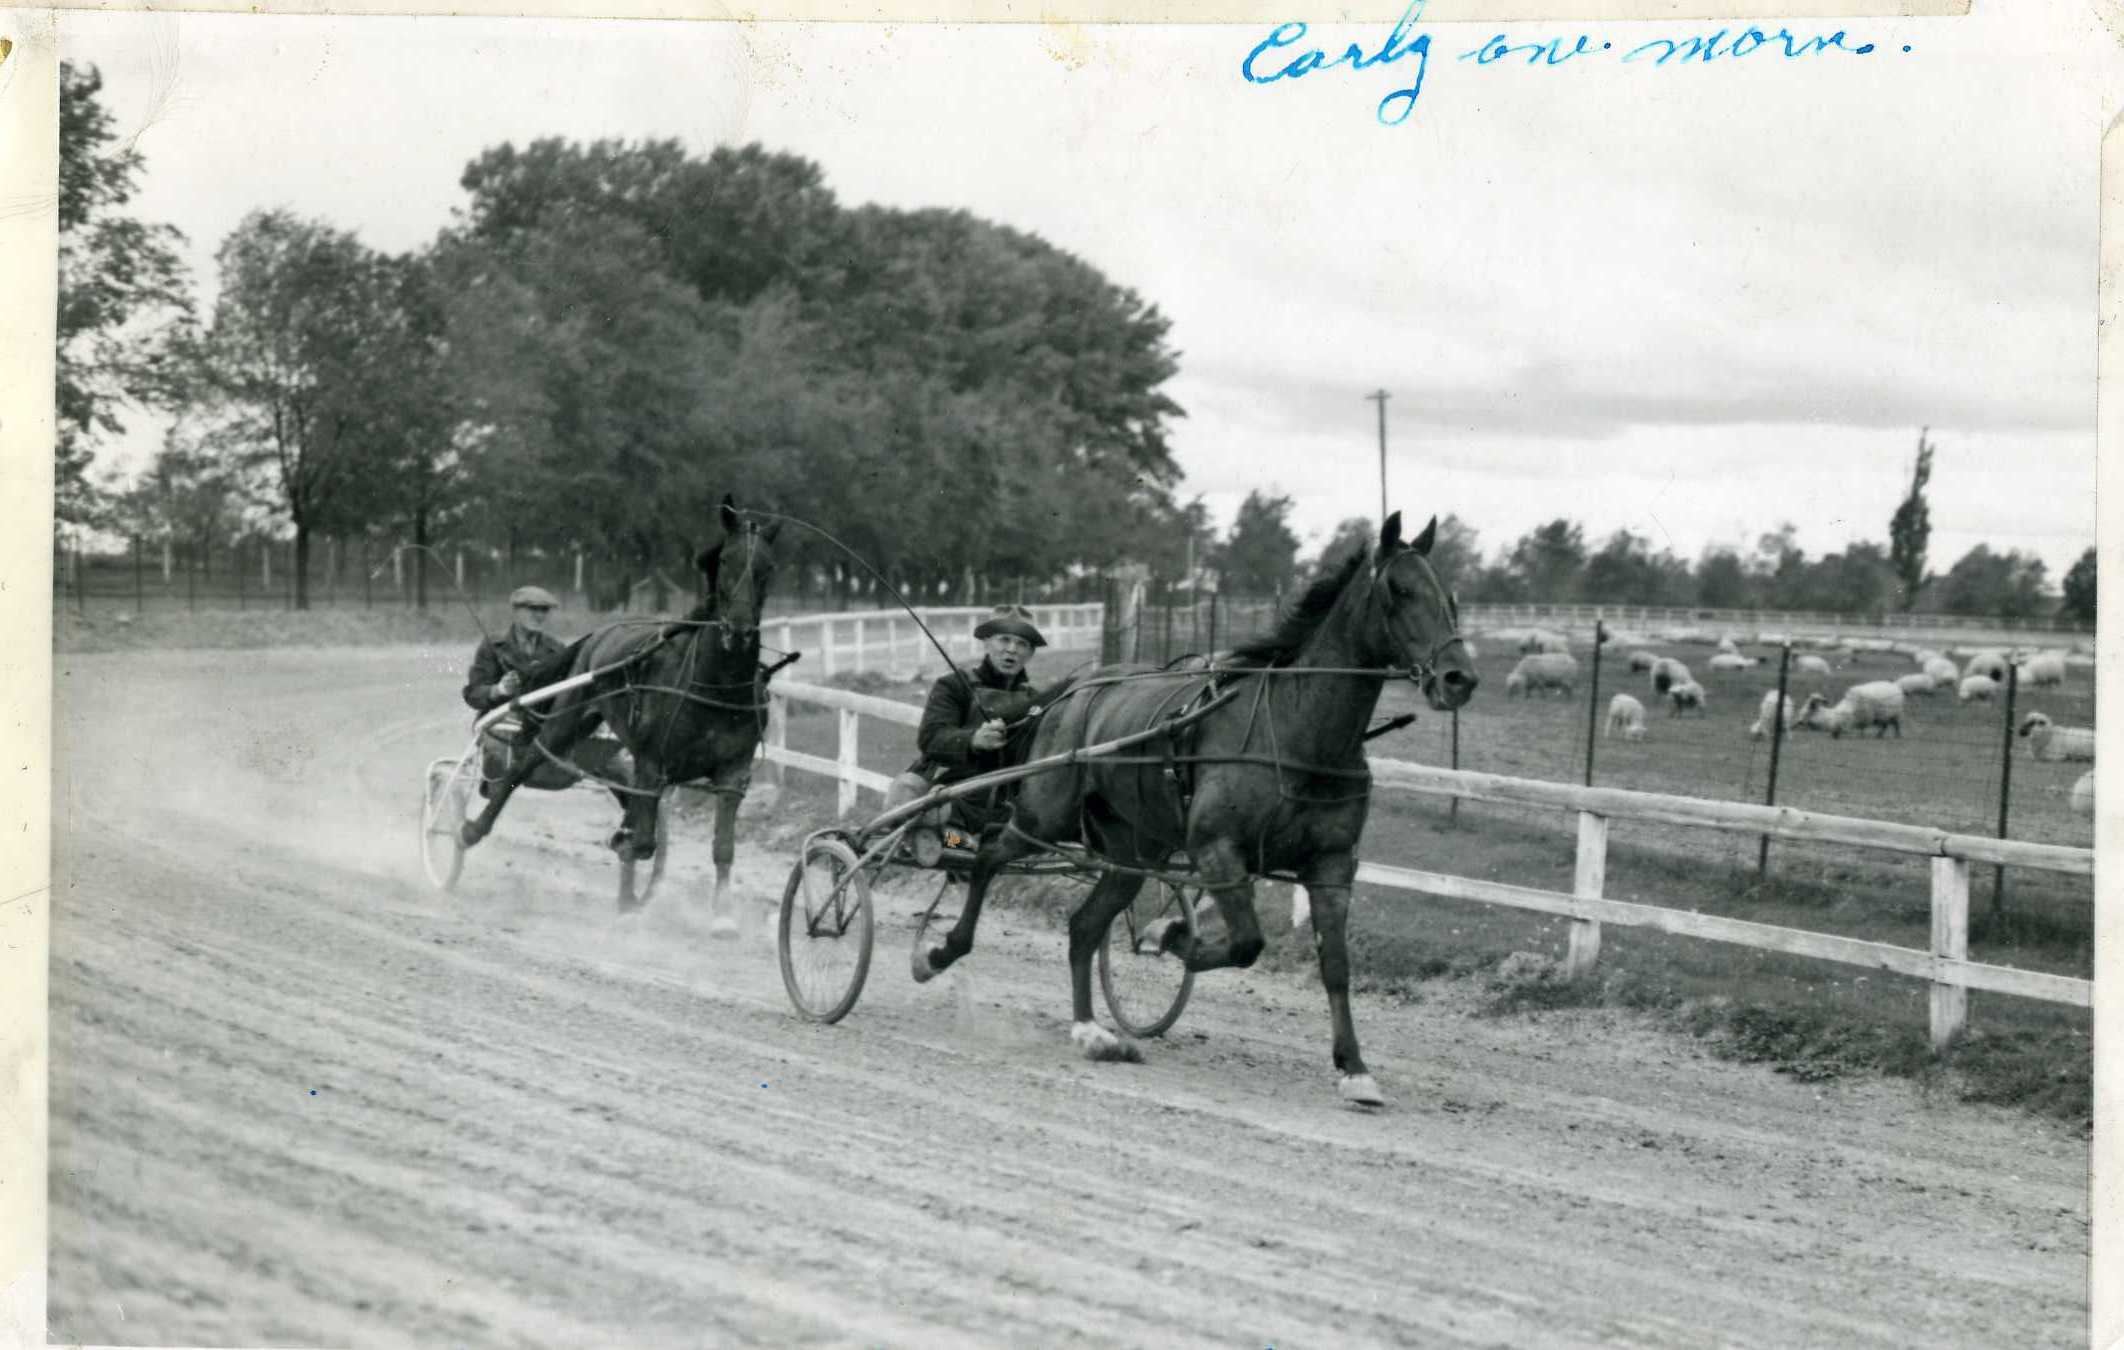 Noah and Guy training the horses early one morning about 1948, at Tautphis Park in Idaho Falls.